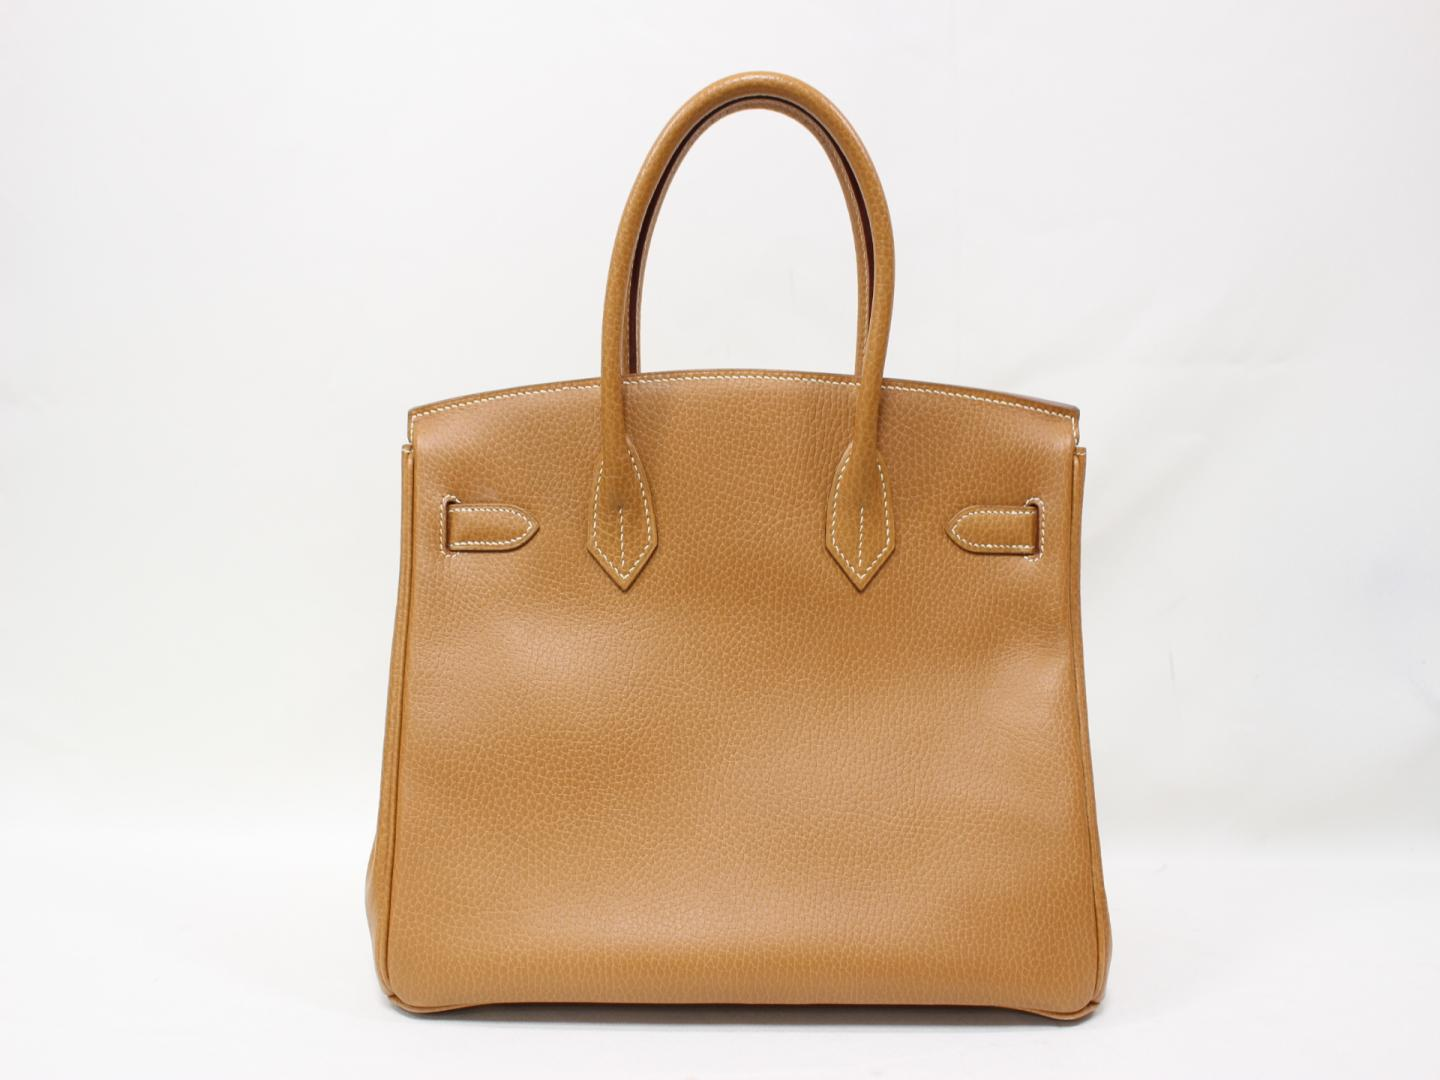 ... official store authentic hermes birkin 30 hand tote bag ardennes leather  gold brown ghw d8f25 bd190 4415219901c0c